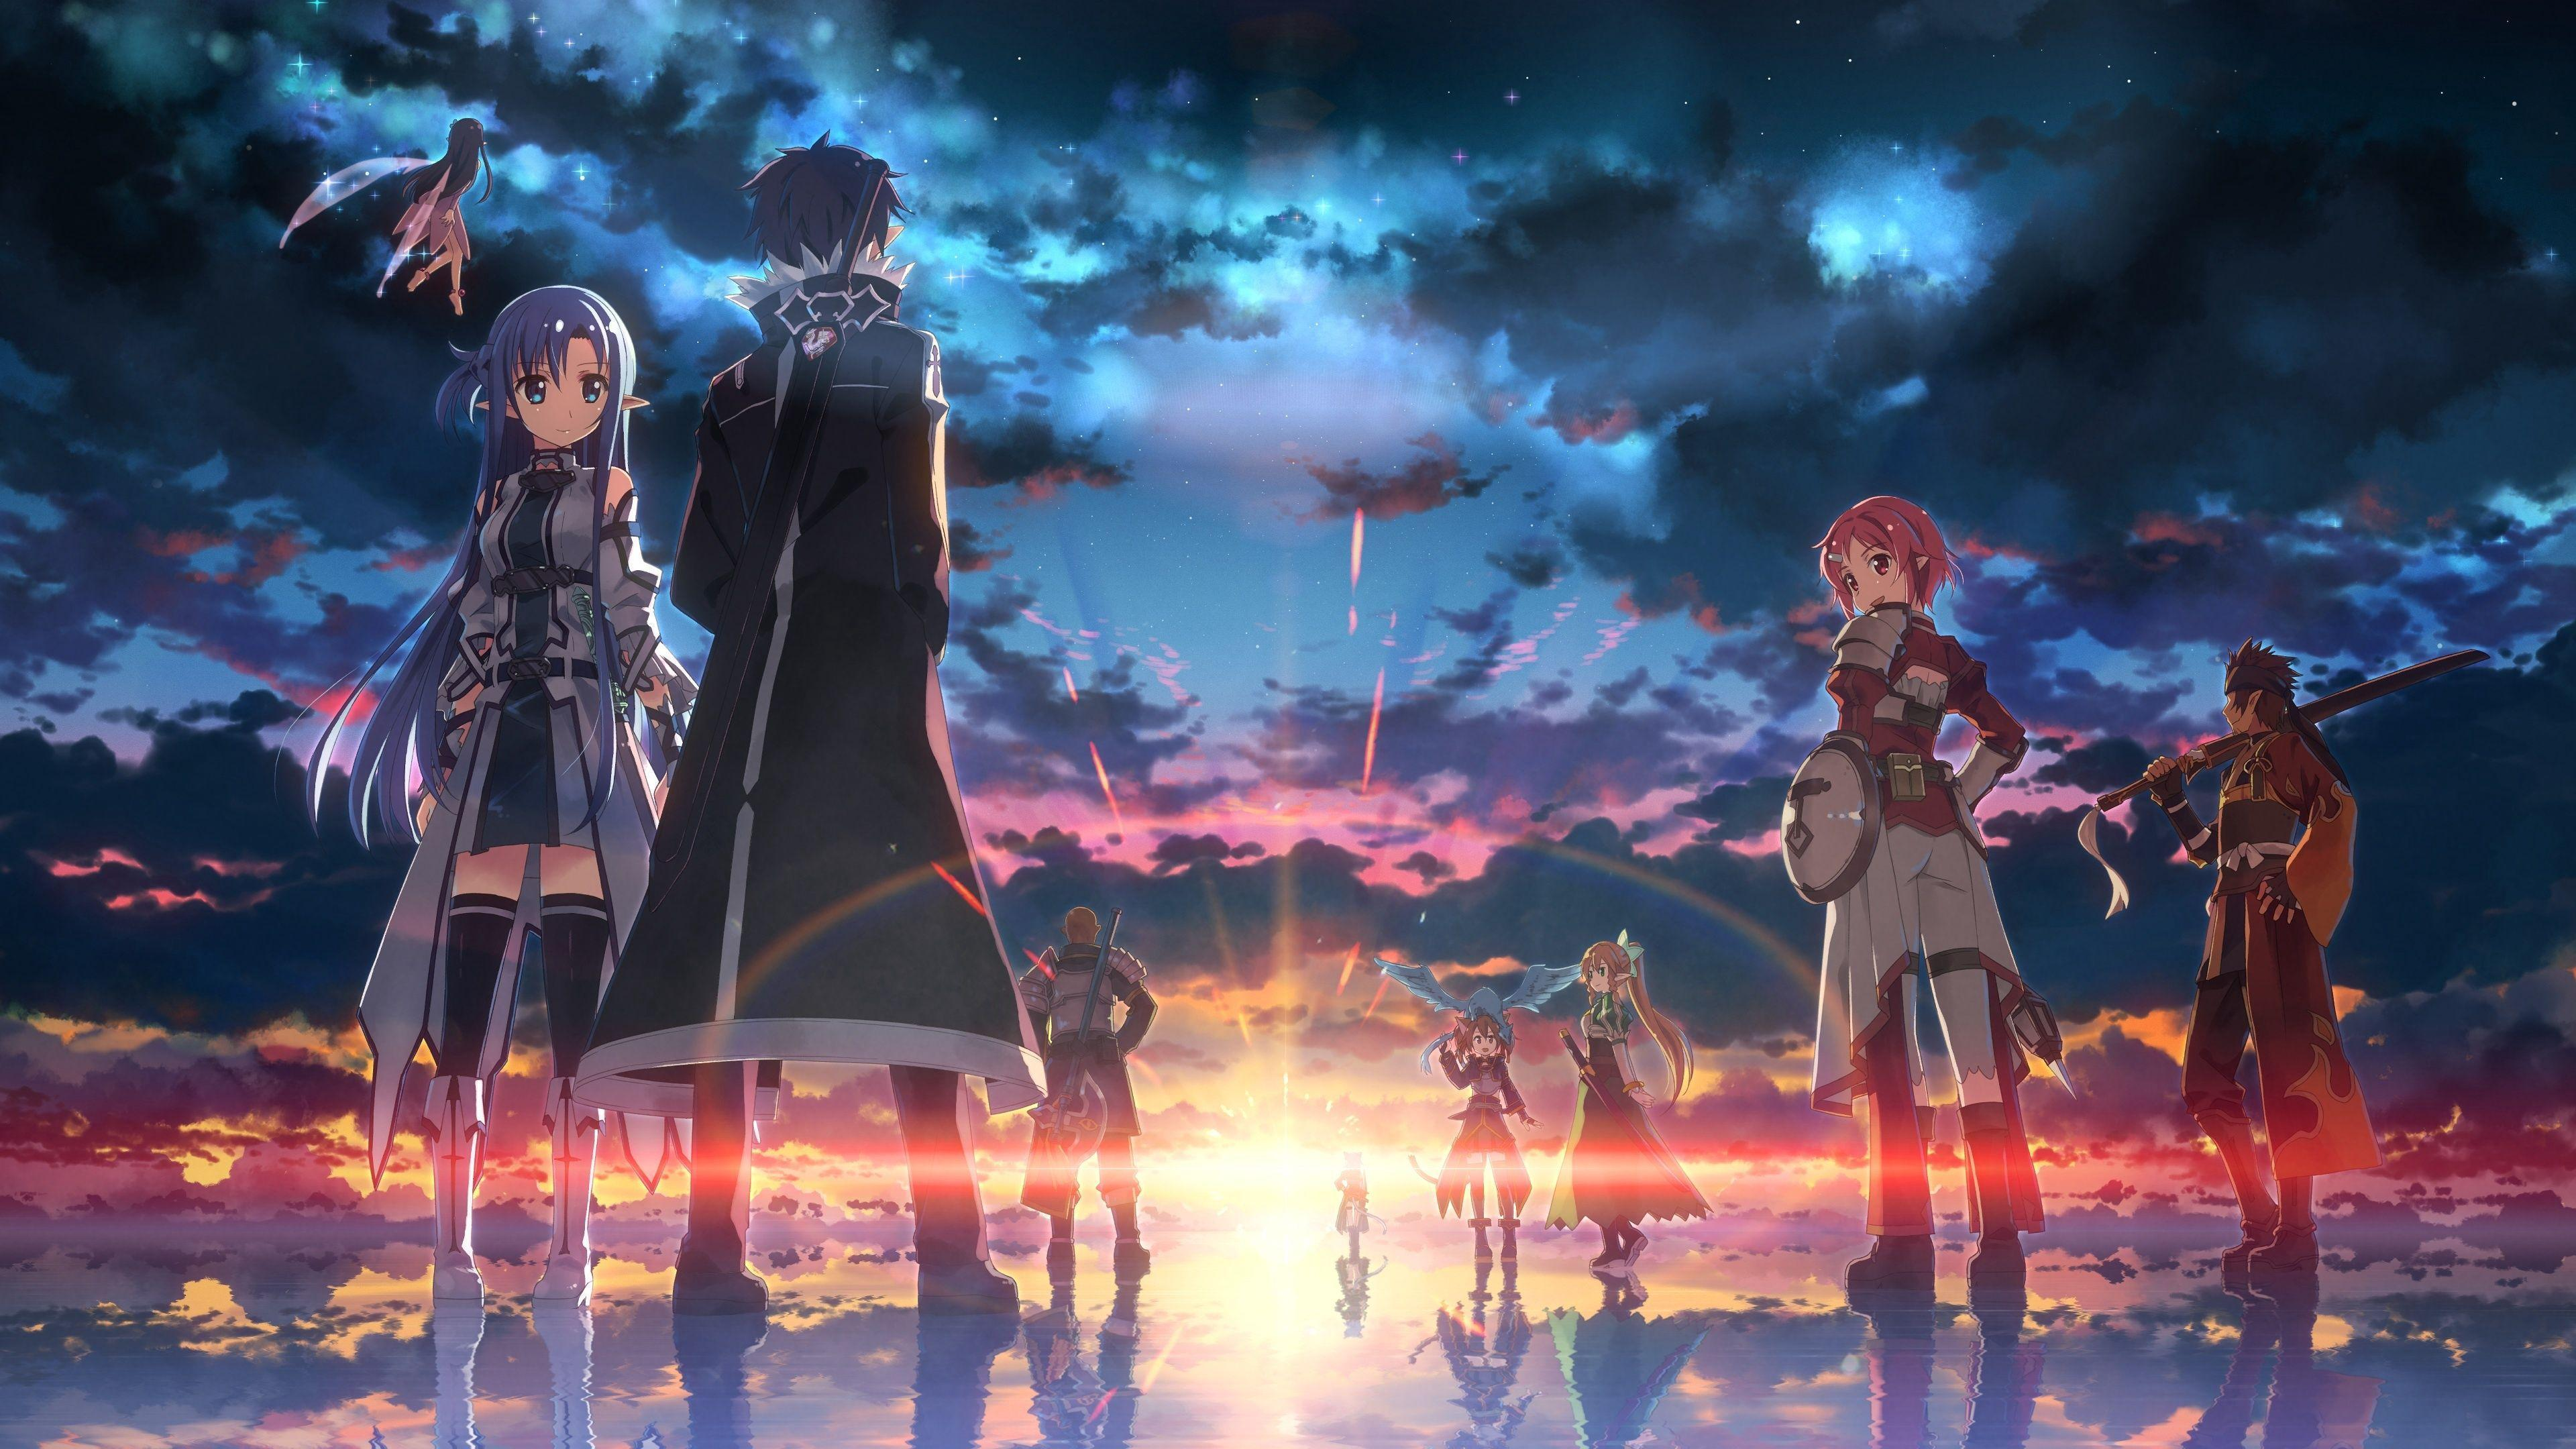 1850 Sword Art Online HD Wallpapers